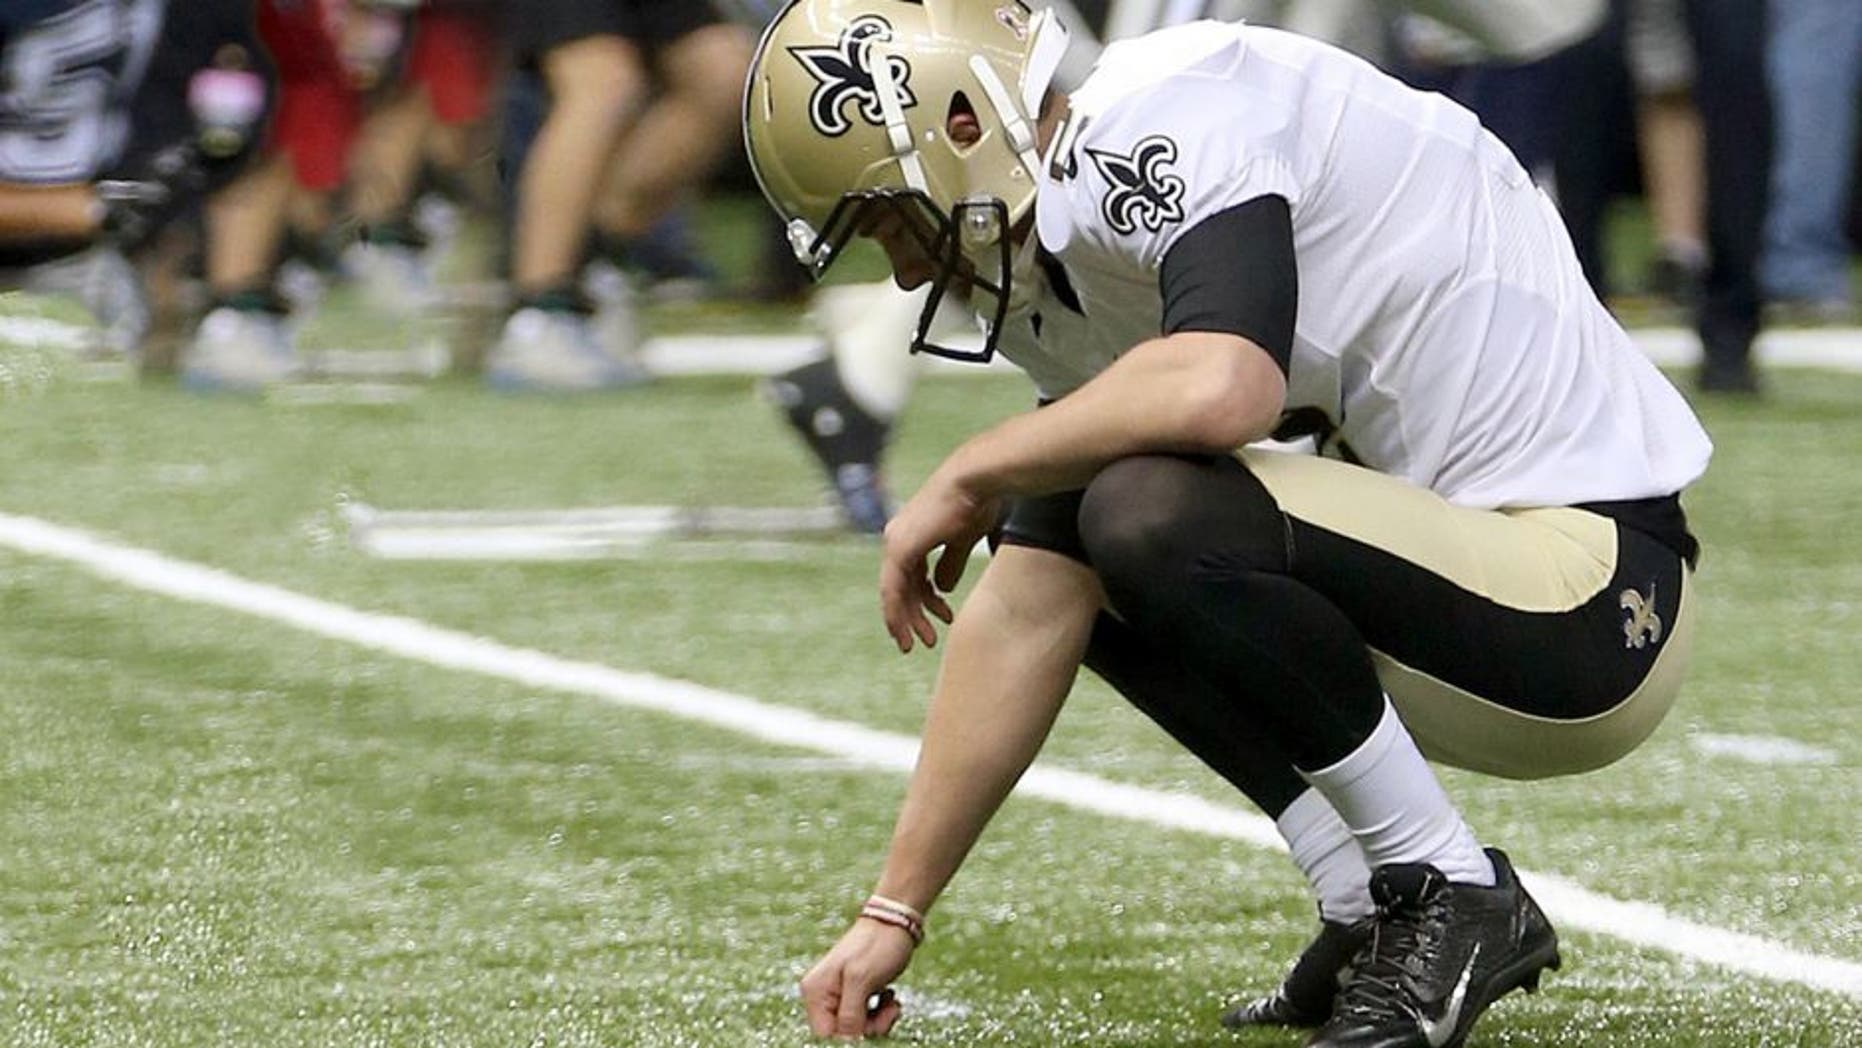 Oct 4, 2015; New Orleans, LA, USA; New Orleans Saints kicker Zach Hocker (2) reacts after missing a field goal at the end of the fourth quarter against the Dallas Cowboys at Mercedes-Benz Superdome. The Saints won 26-20. Mandatory Credit: Chuck Cook-USA TODAY Sports